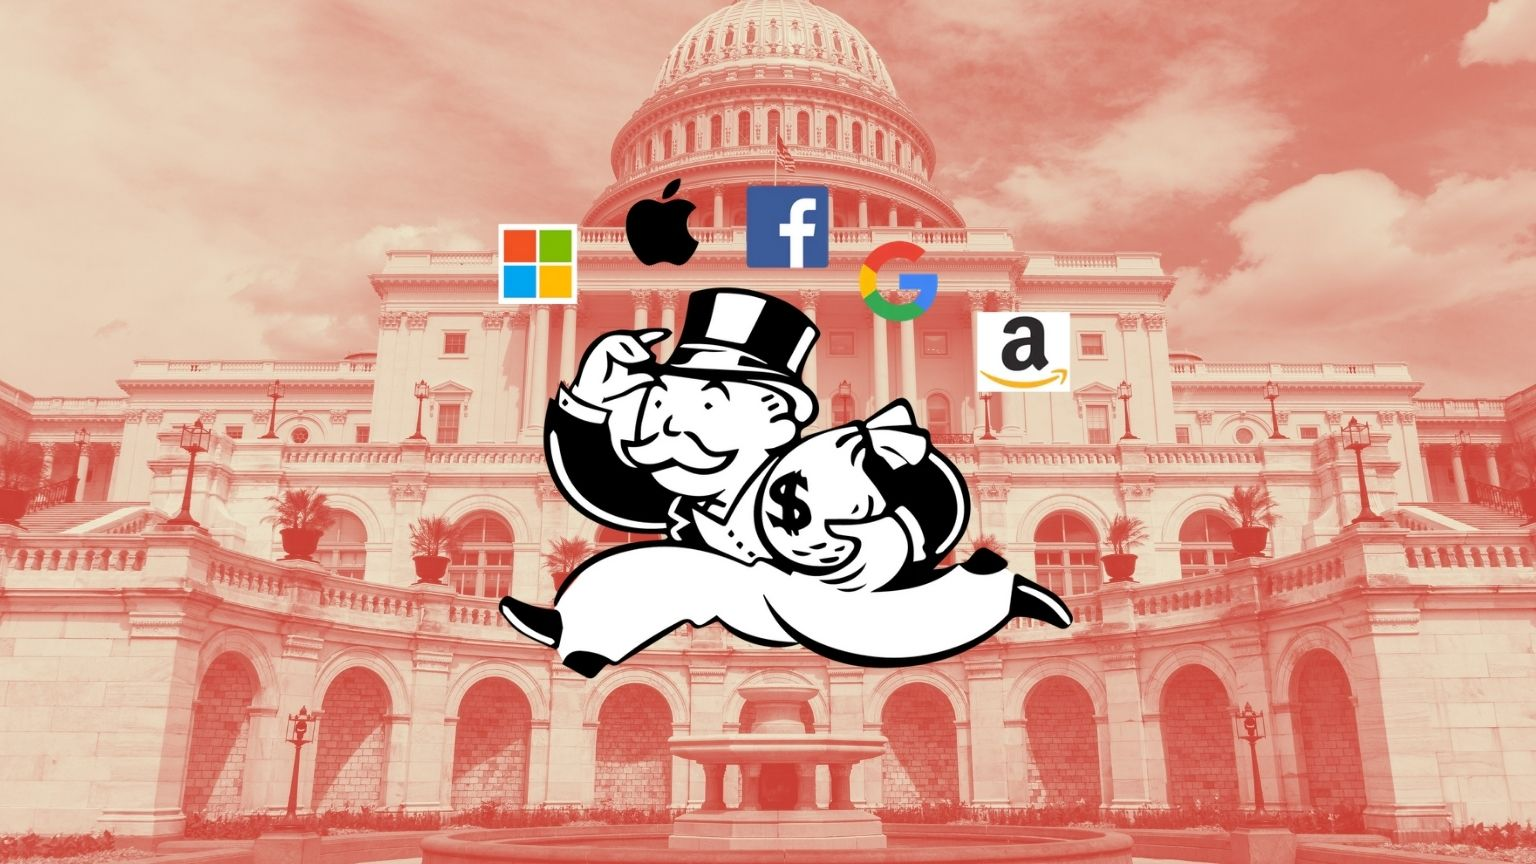 Despite antitrust scrutiny, Big Tech acquisitions are at an all time high